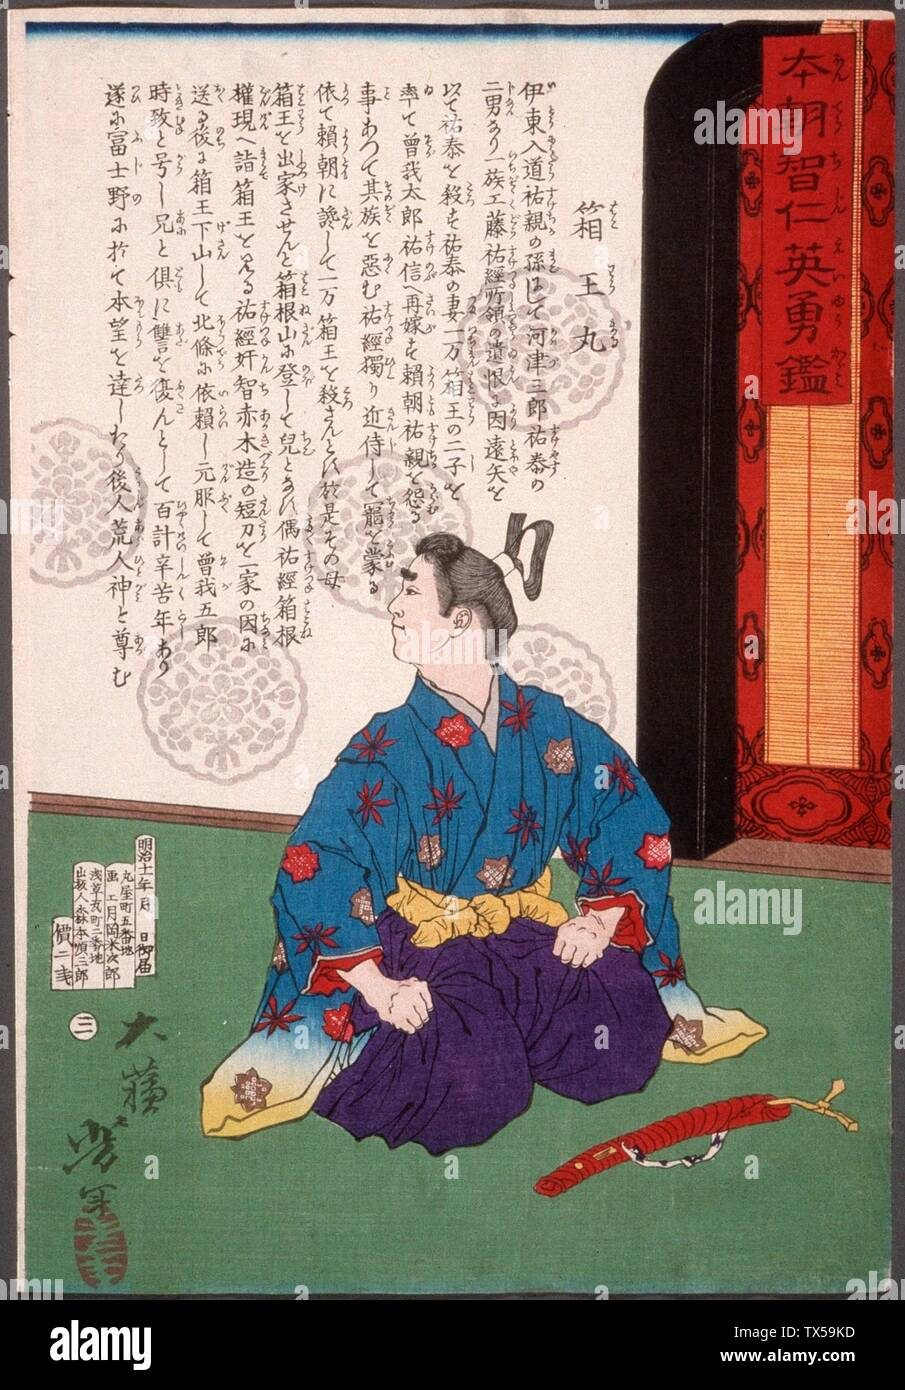 'Hakoōmaru Kneeling by a Short Sword; English:  Japan, 1878 Series: A Mirror of Wisdom, Benevolence, and Valor in Japan Prints; woodcuts Color woodblock print Herbert R. Cole Collection (M.84.31.268) Japanese Art; 1878date QS:P571,+1878-00-00T00:00:00Z/9; ' - Stock Image